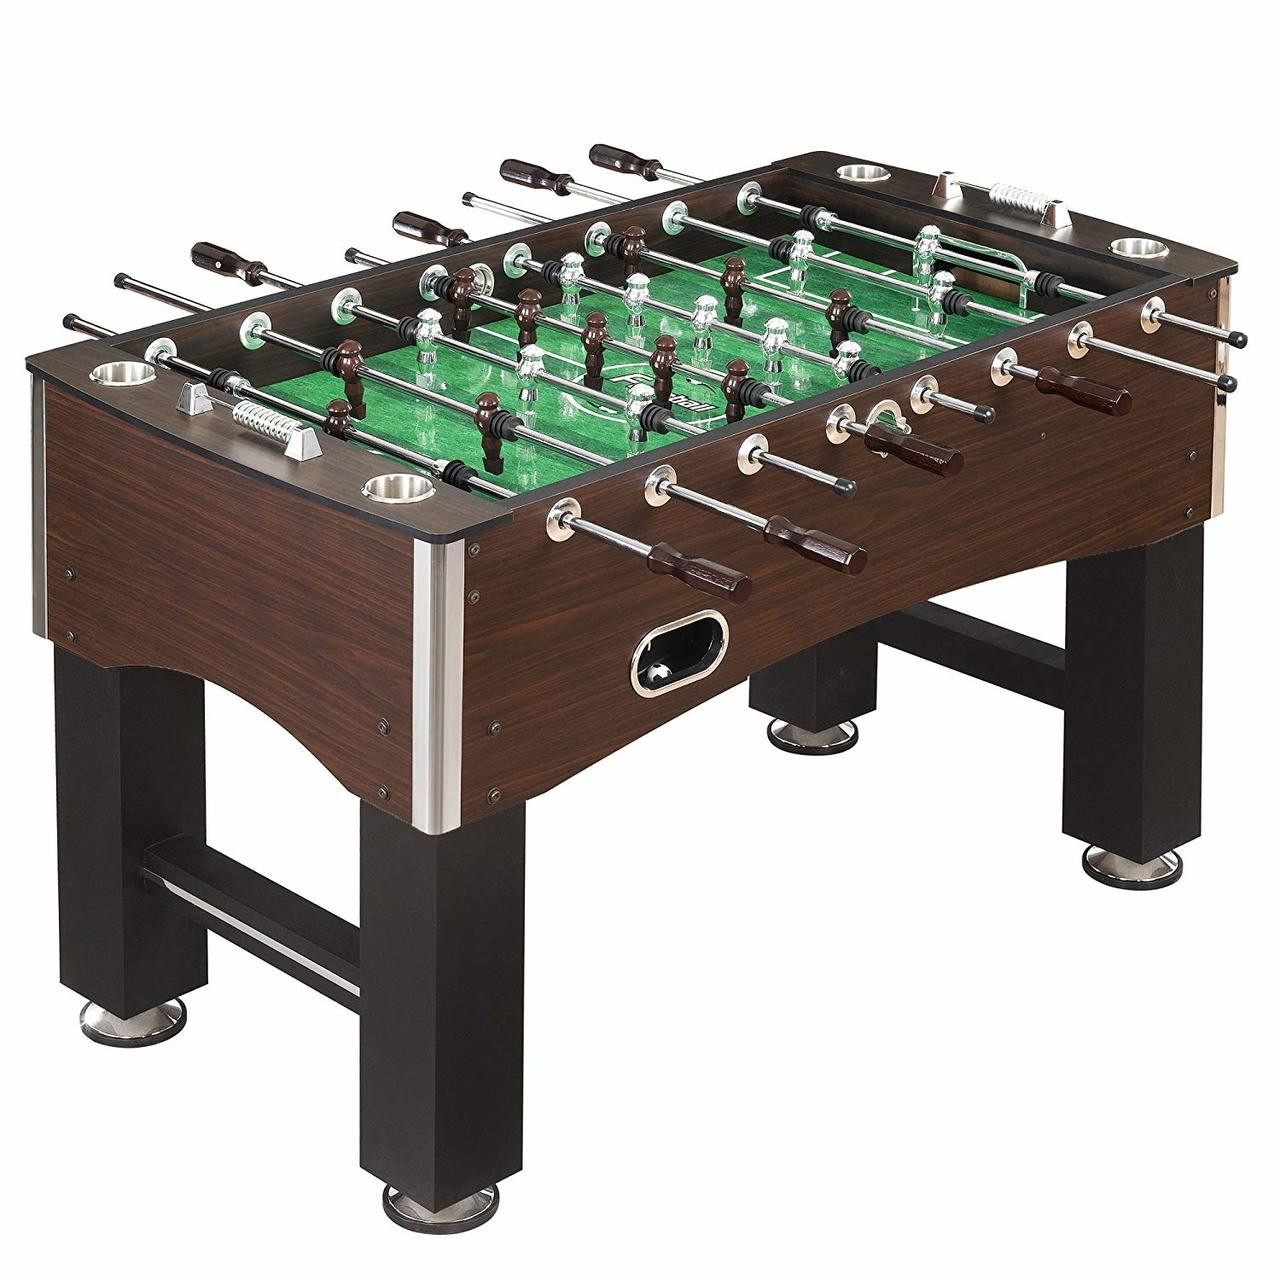 Cadillac 56-Inch Foosball Table, Family Soccer Game with Wood Grain Finish, Analog Scoring and Free Accessories (FO-1010)